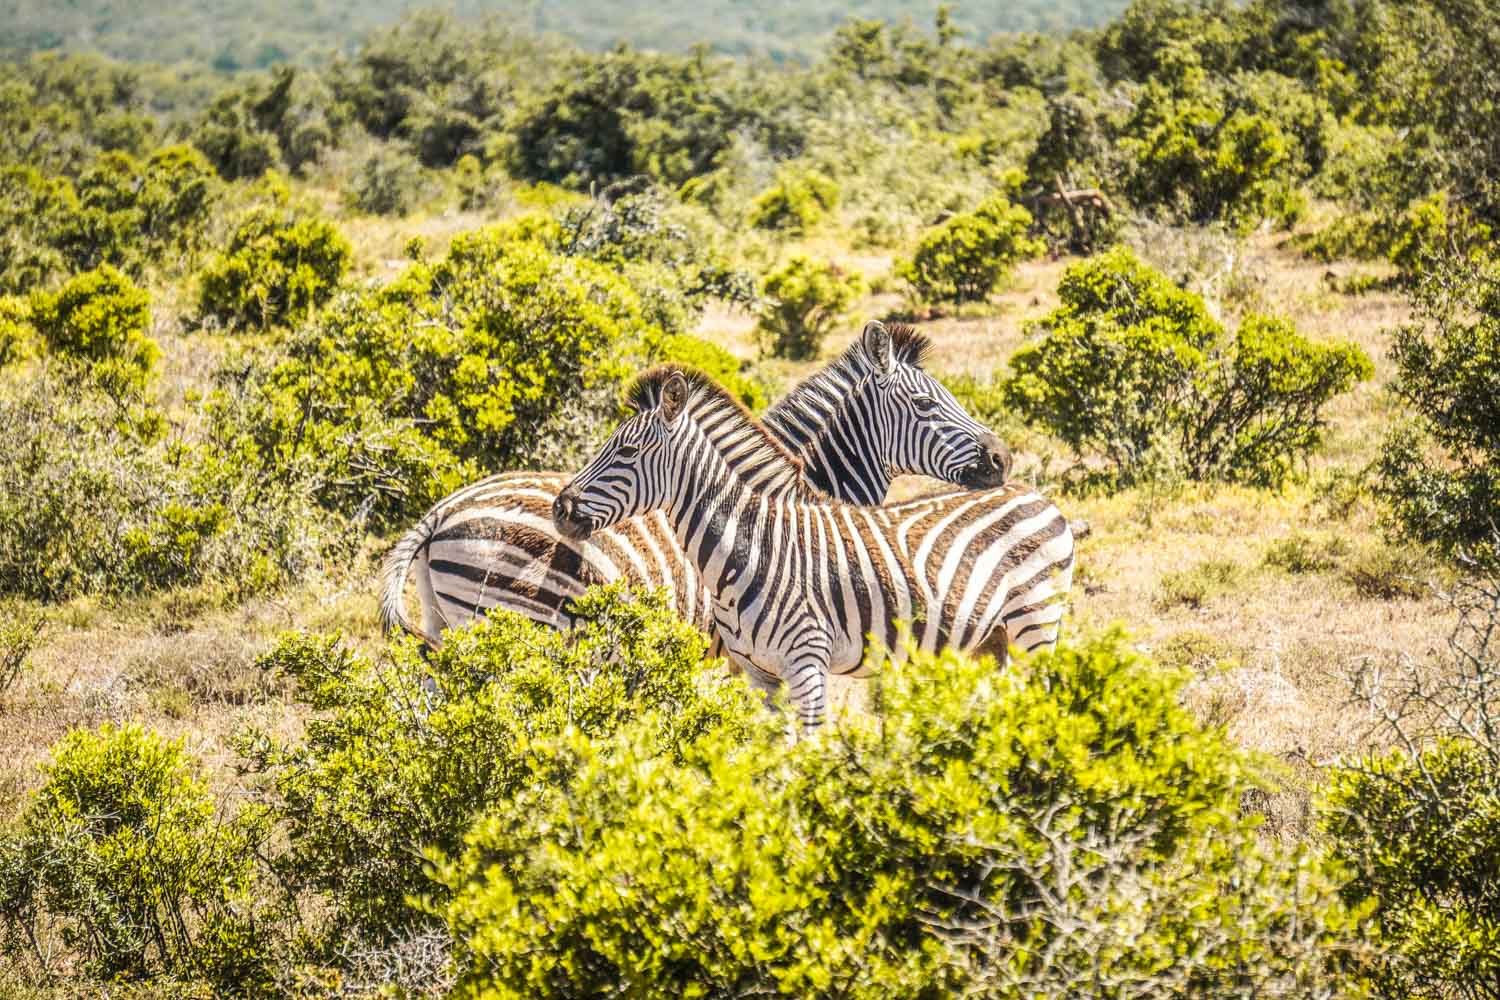 Safari in Addo Elephant National Park: A Step-by-Step Guide